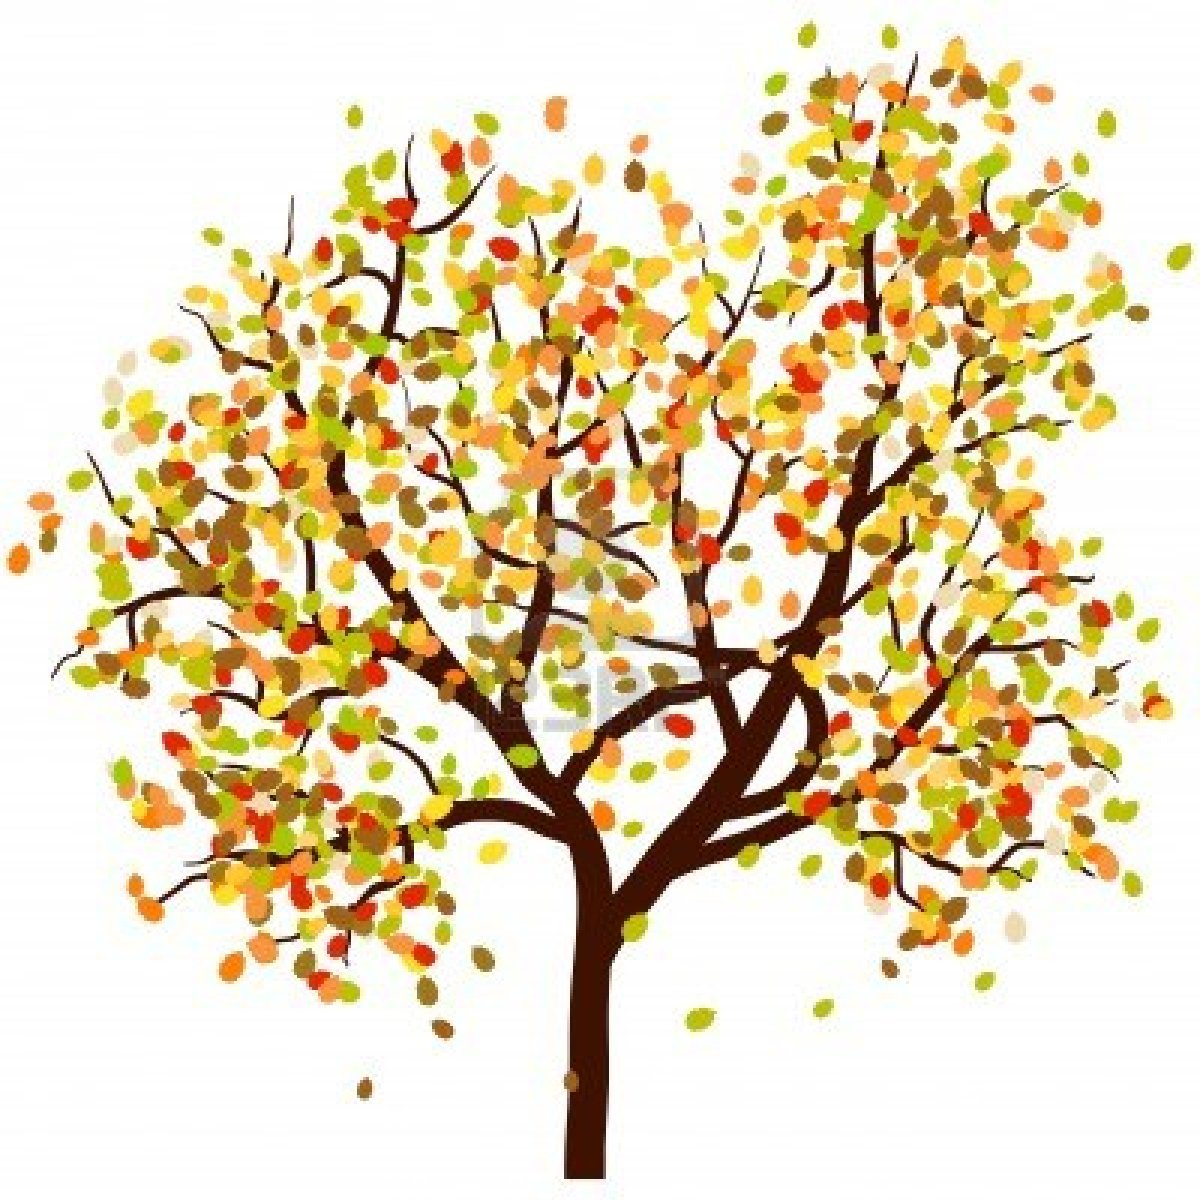 Autumn trees and leaves clipart graphic transparent download Fall clip art tree - 15 clip arts for free download on EEN 2019 graphic transparent download